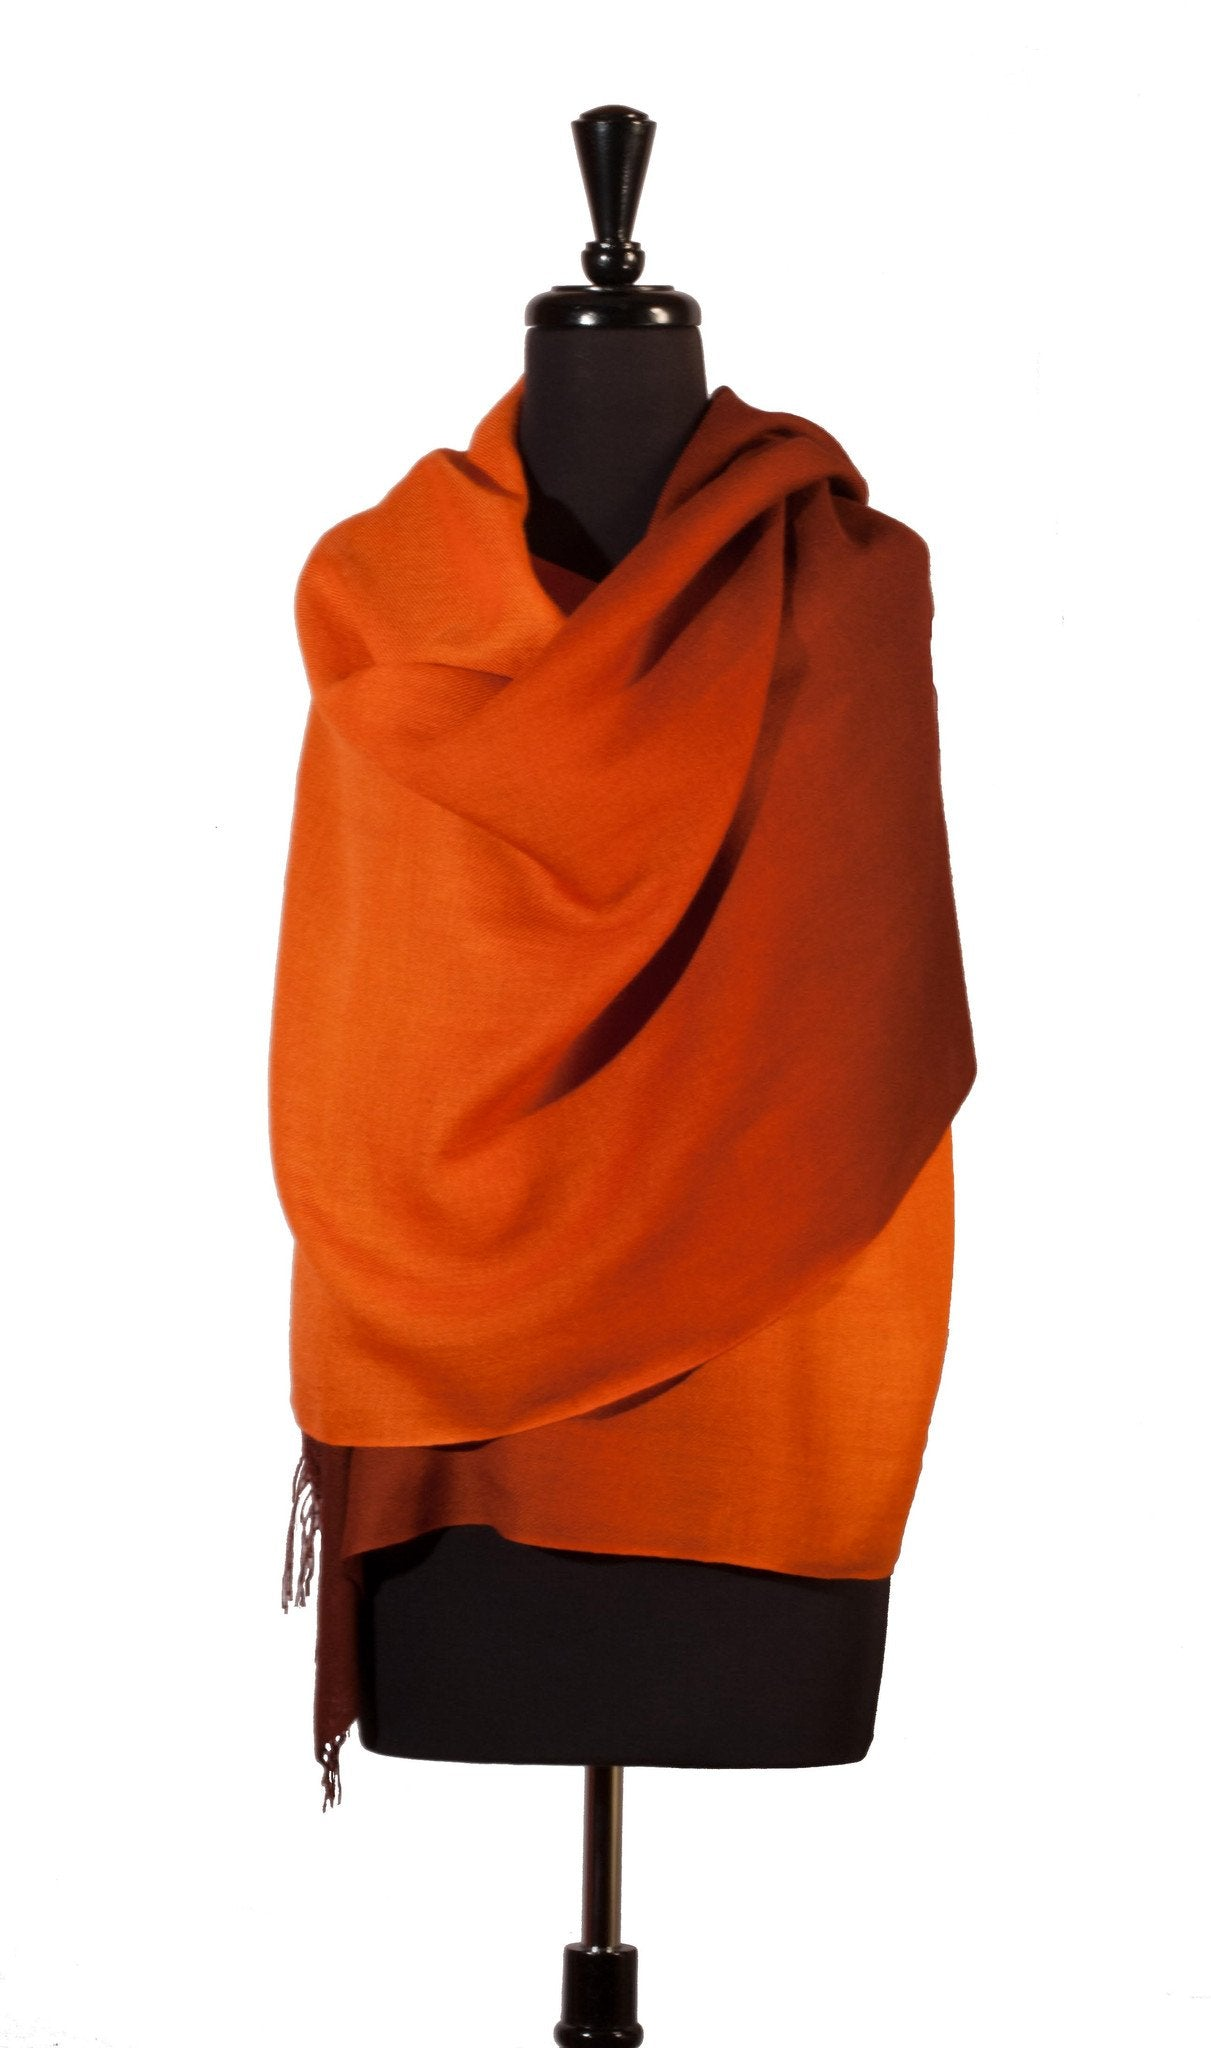 Shawl Baby Alpaca & Silk in Two-Tone Degrade - Orange - Qinti - The Peruvian Shop